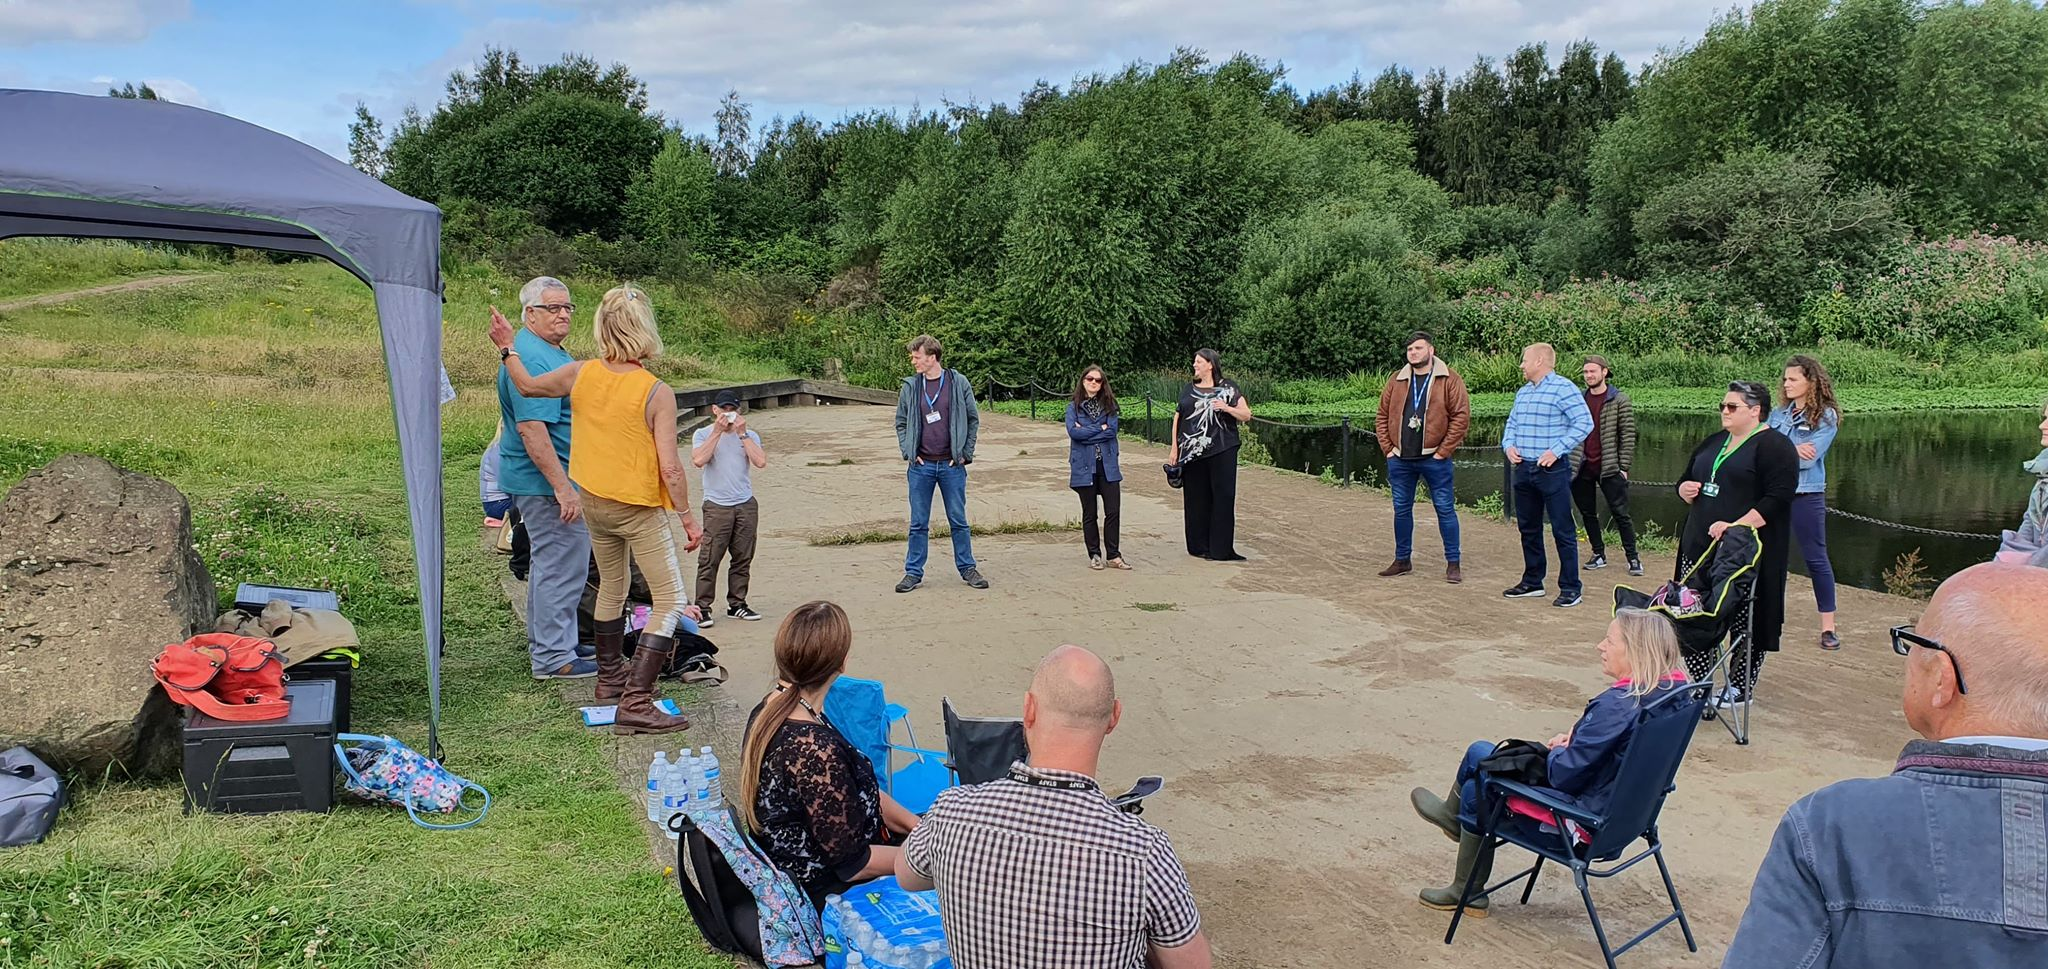 Successful PEAT Networking Picnic